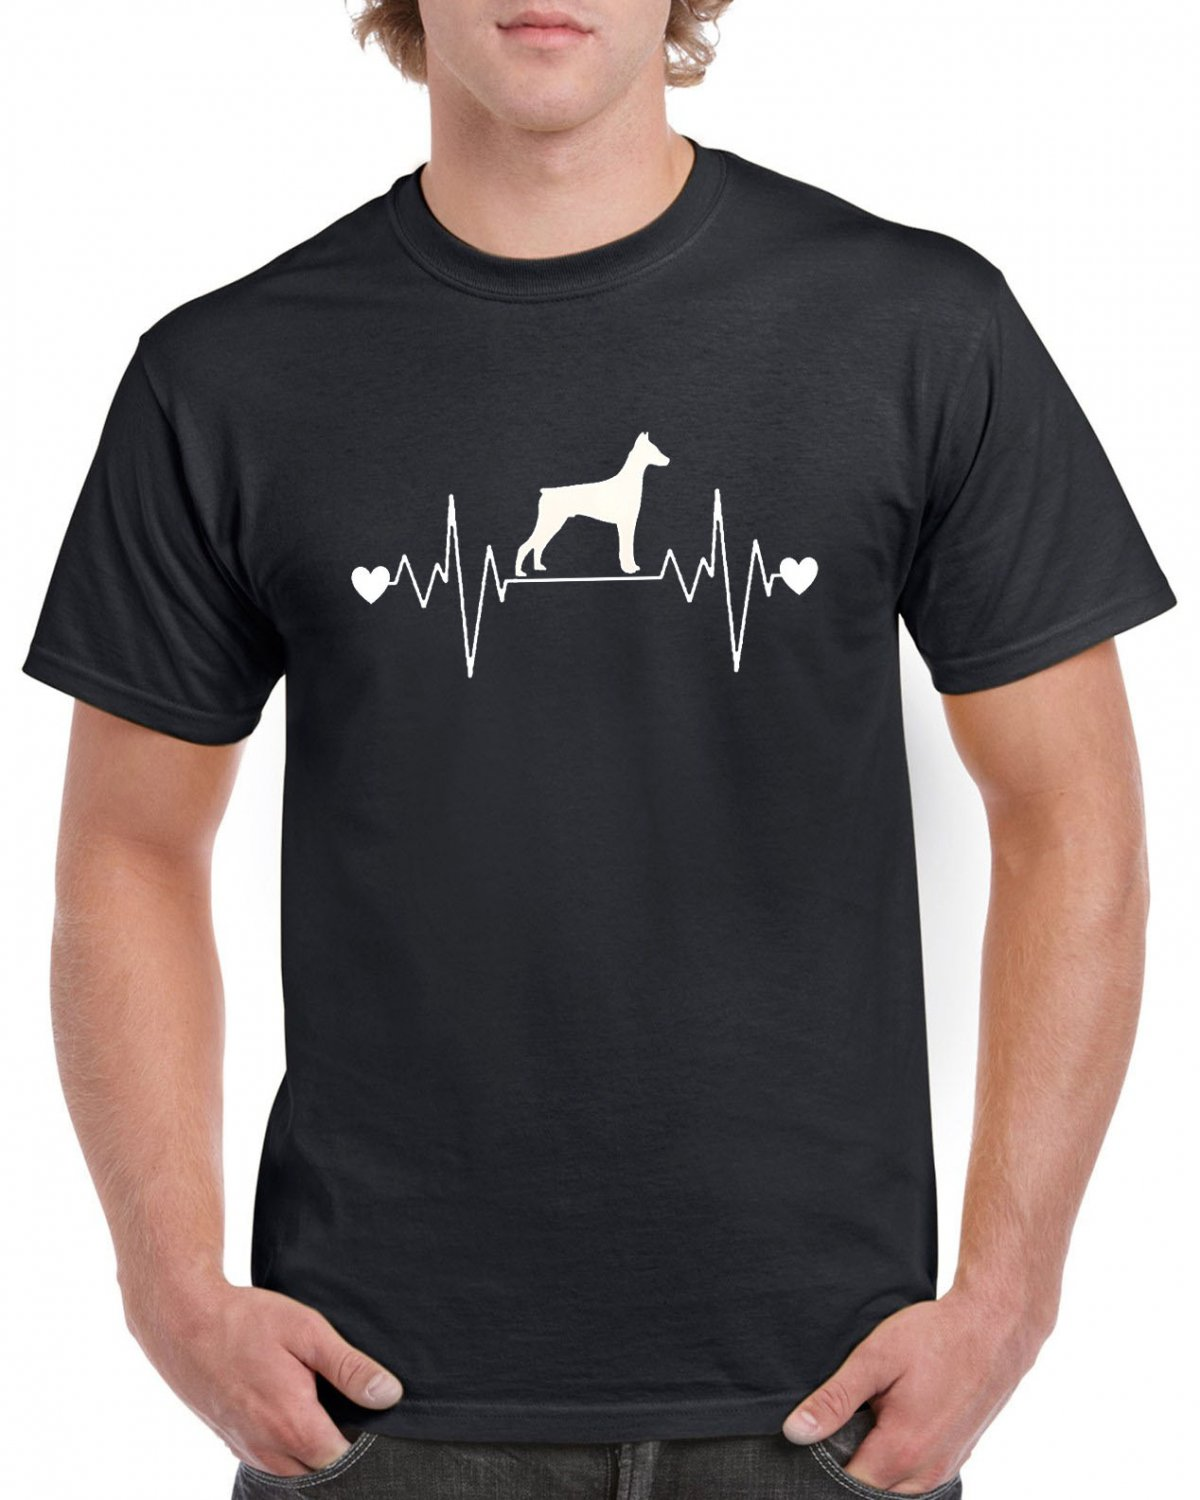 Doberman Pincher Dog Heart Pulse Rate T-shirt Dog Lovers Tshirt Cool Unisex Top Tee